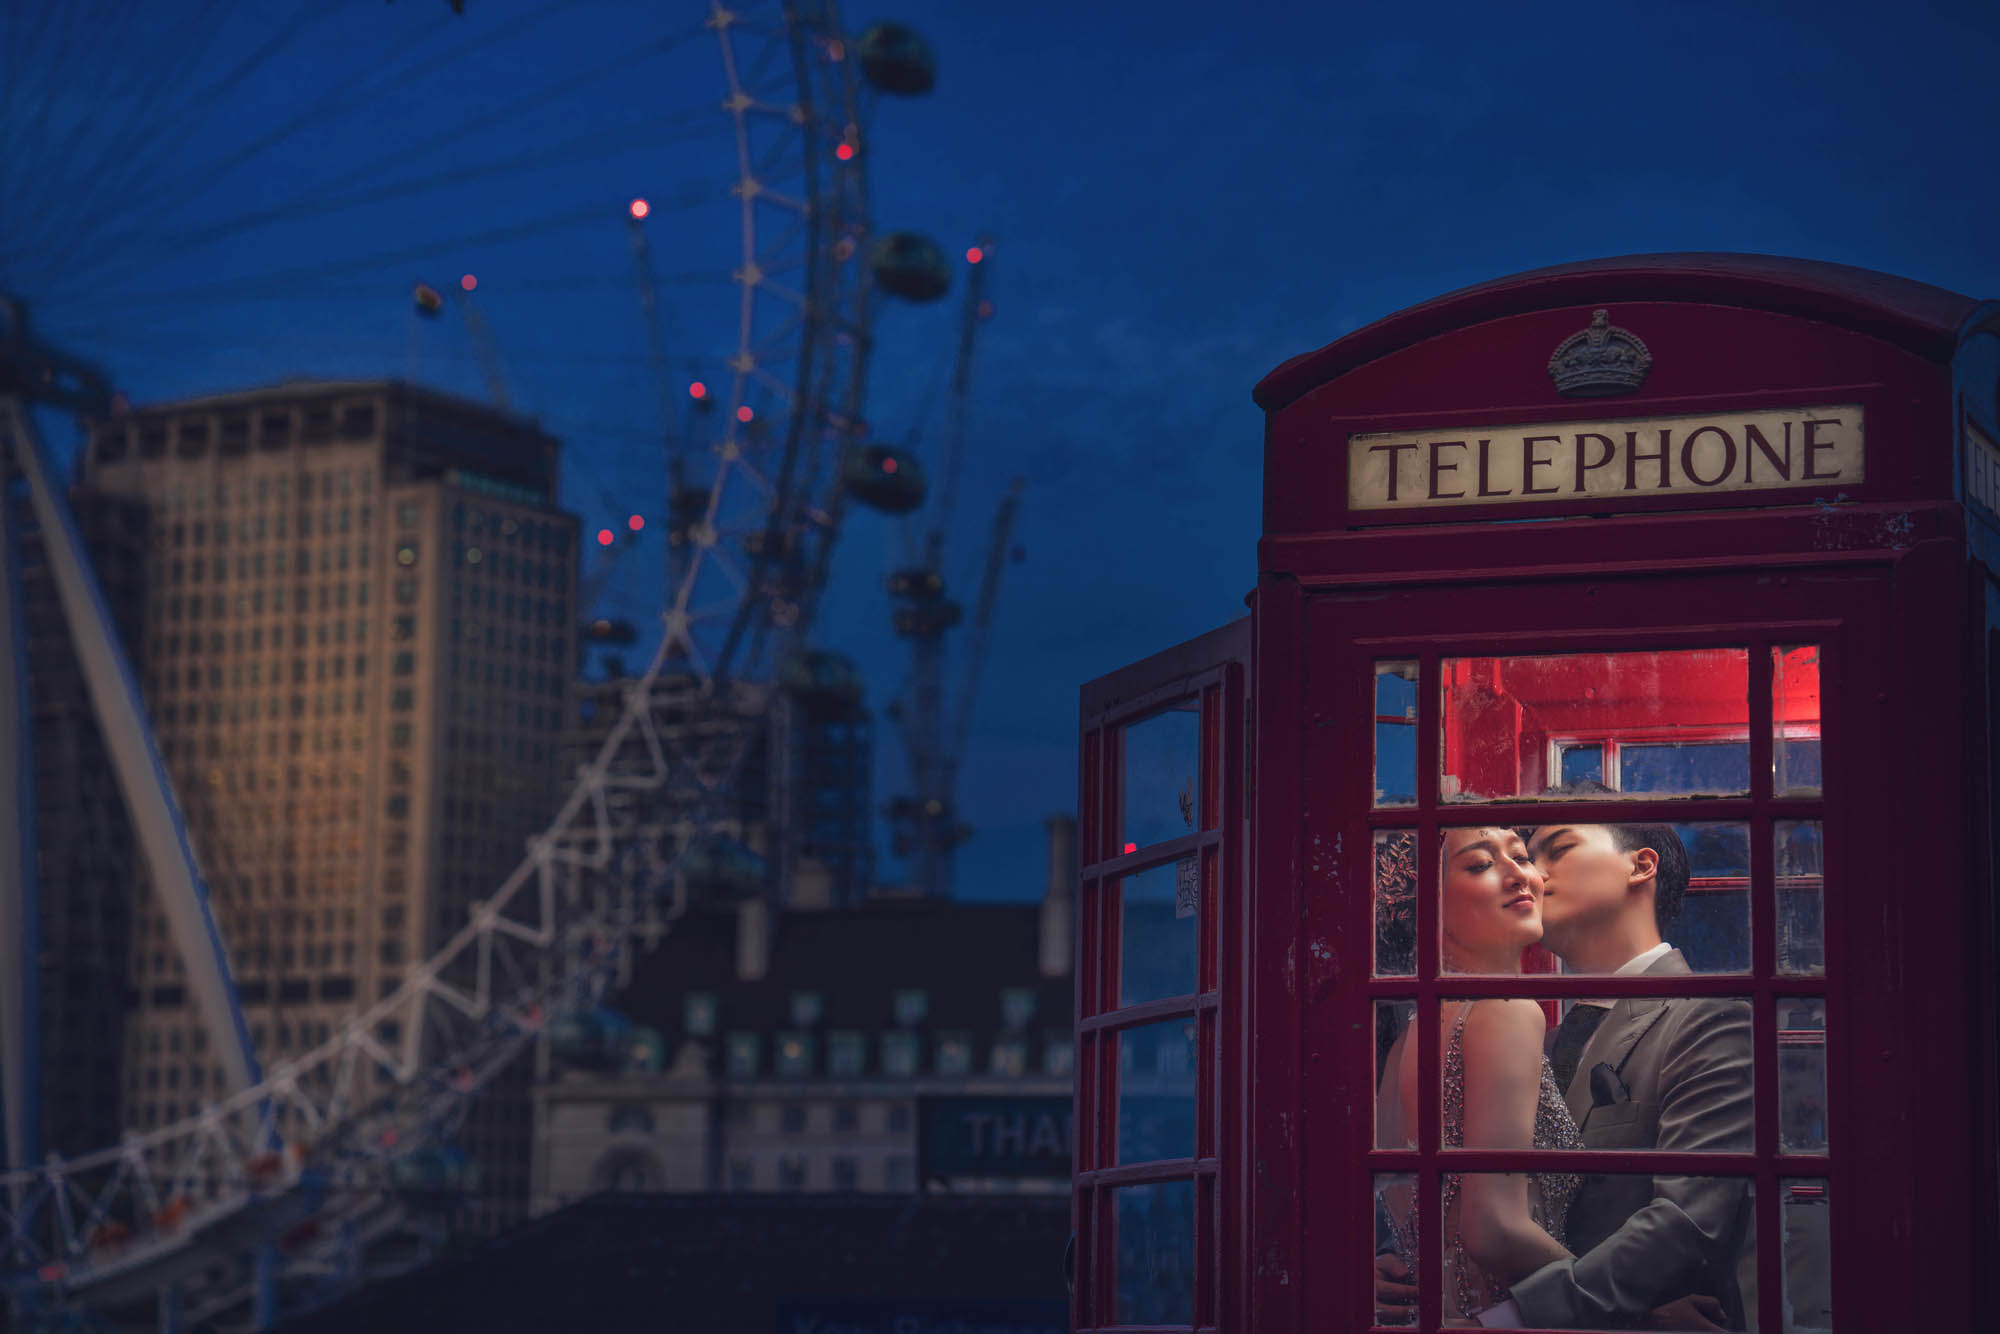 Bride and groom kiss in iconic London phone booth by the London Eye, by CM Leung